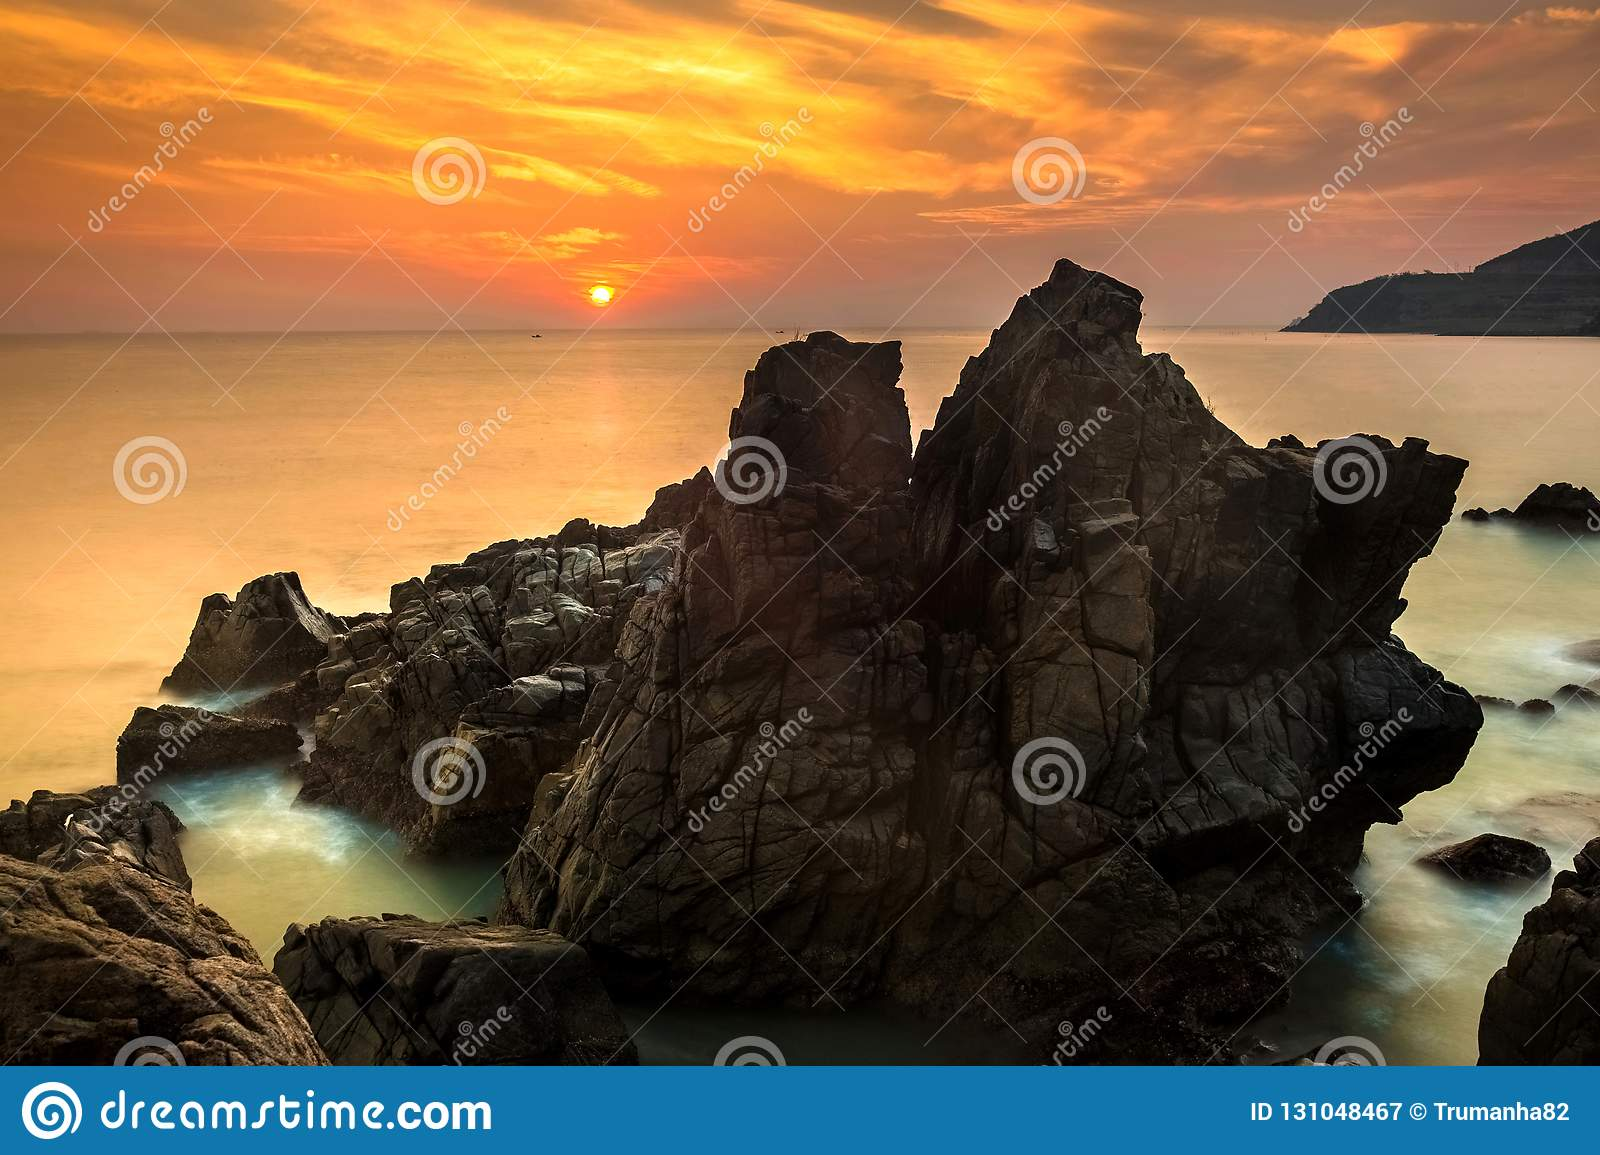 Nature Seascape with Exotic Boulders, Silky Water at Gorgeous Orange Sunrise